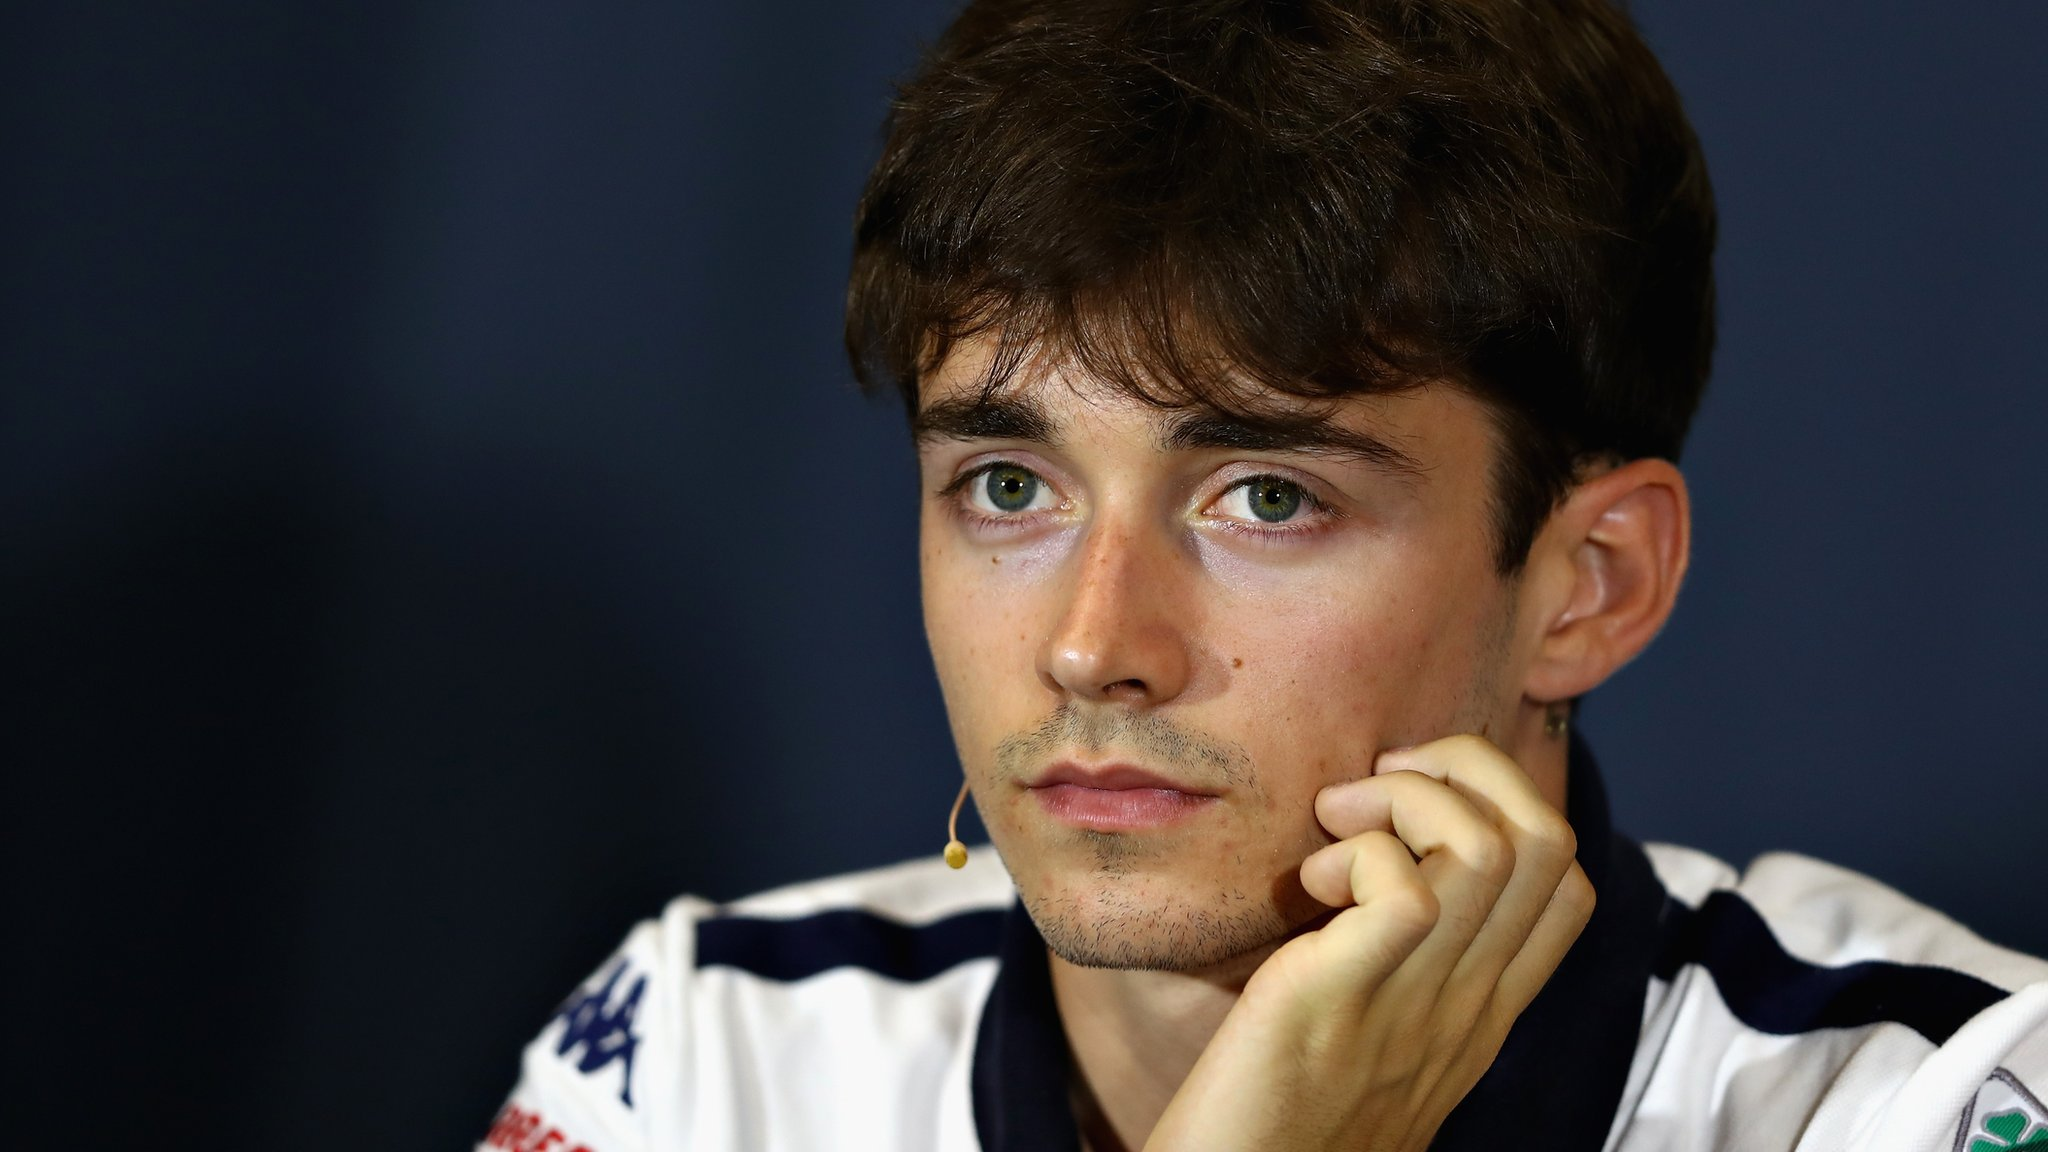 Monaco Grand Prix: Why Charles Leclerc is living up to the hype in his maiden season